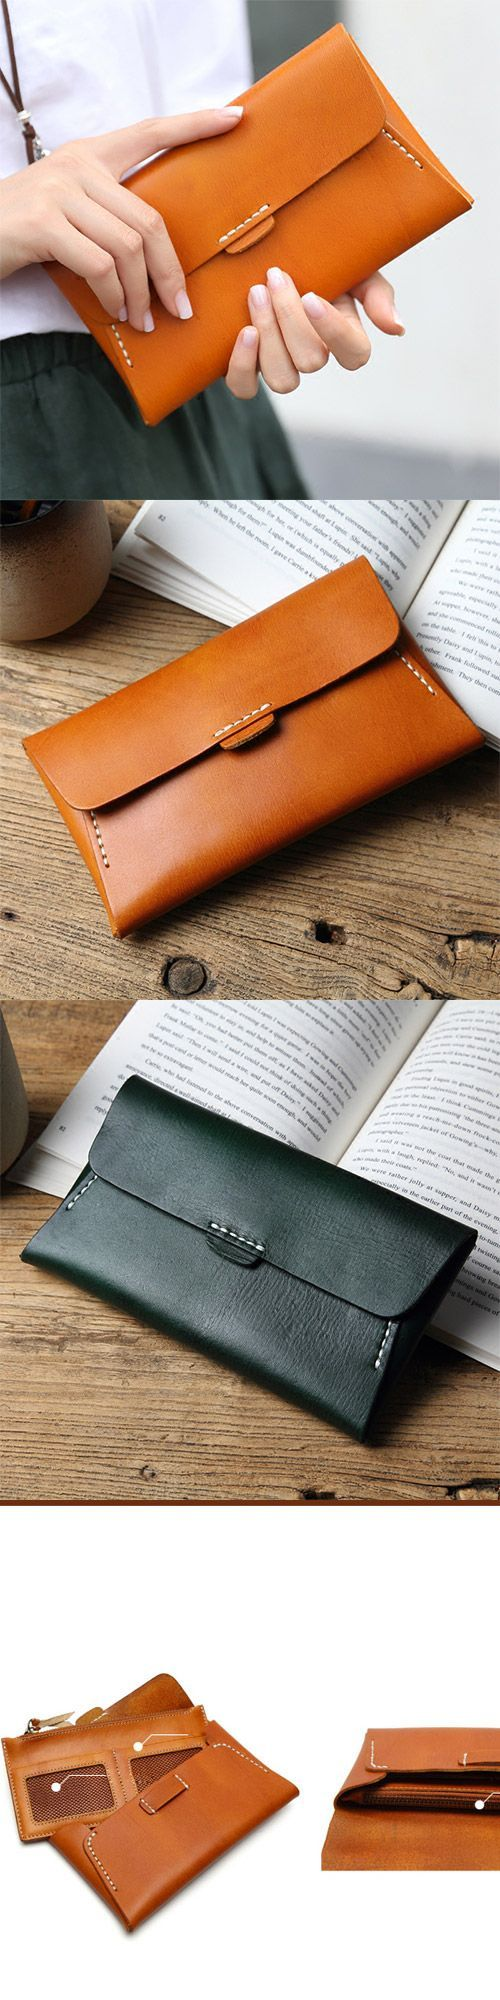 Handmade leather vintage women long multi cards wallet clutch purse wallet Women's Handbags & Wallets - http://amzn.to/2ixSkm5 #purses #handbags